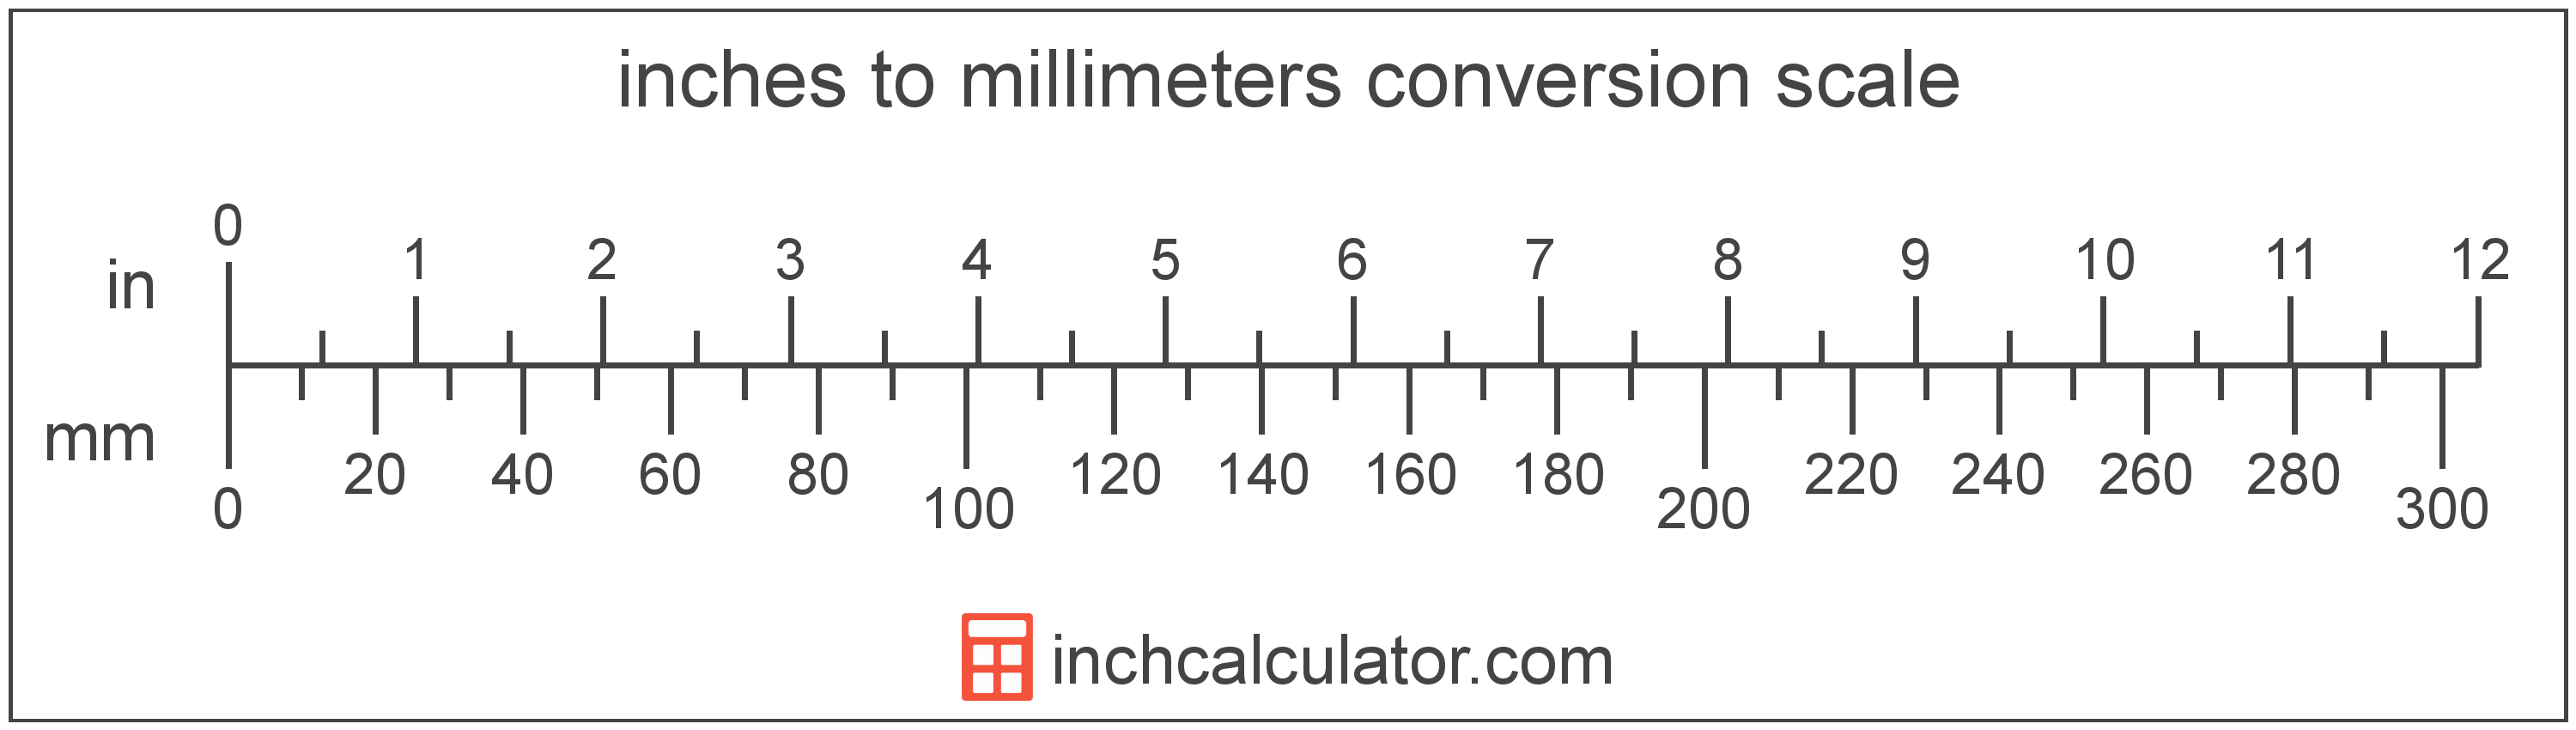 Marvelous Inches And Centimeters Are Units Used To Measure Length